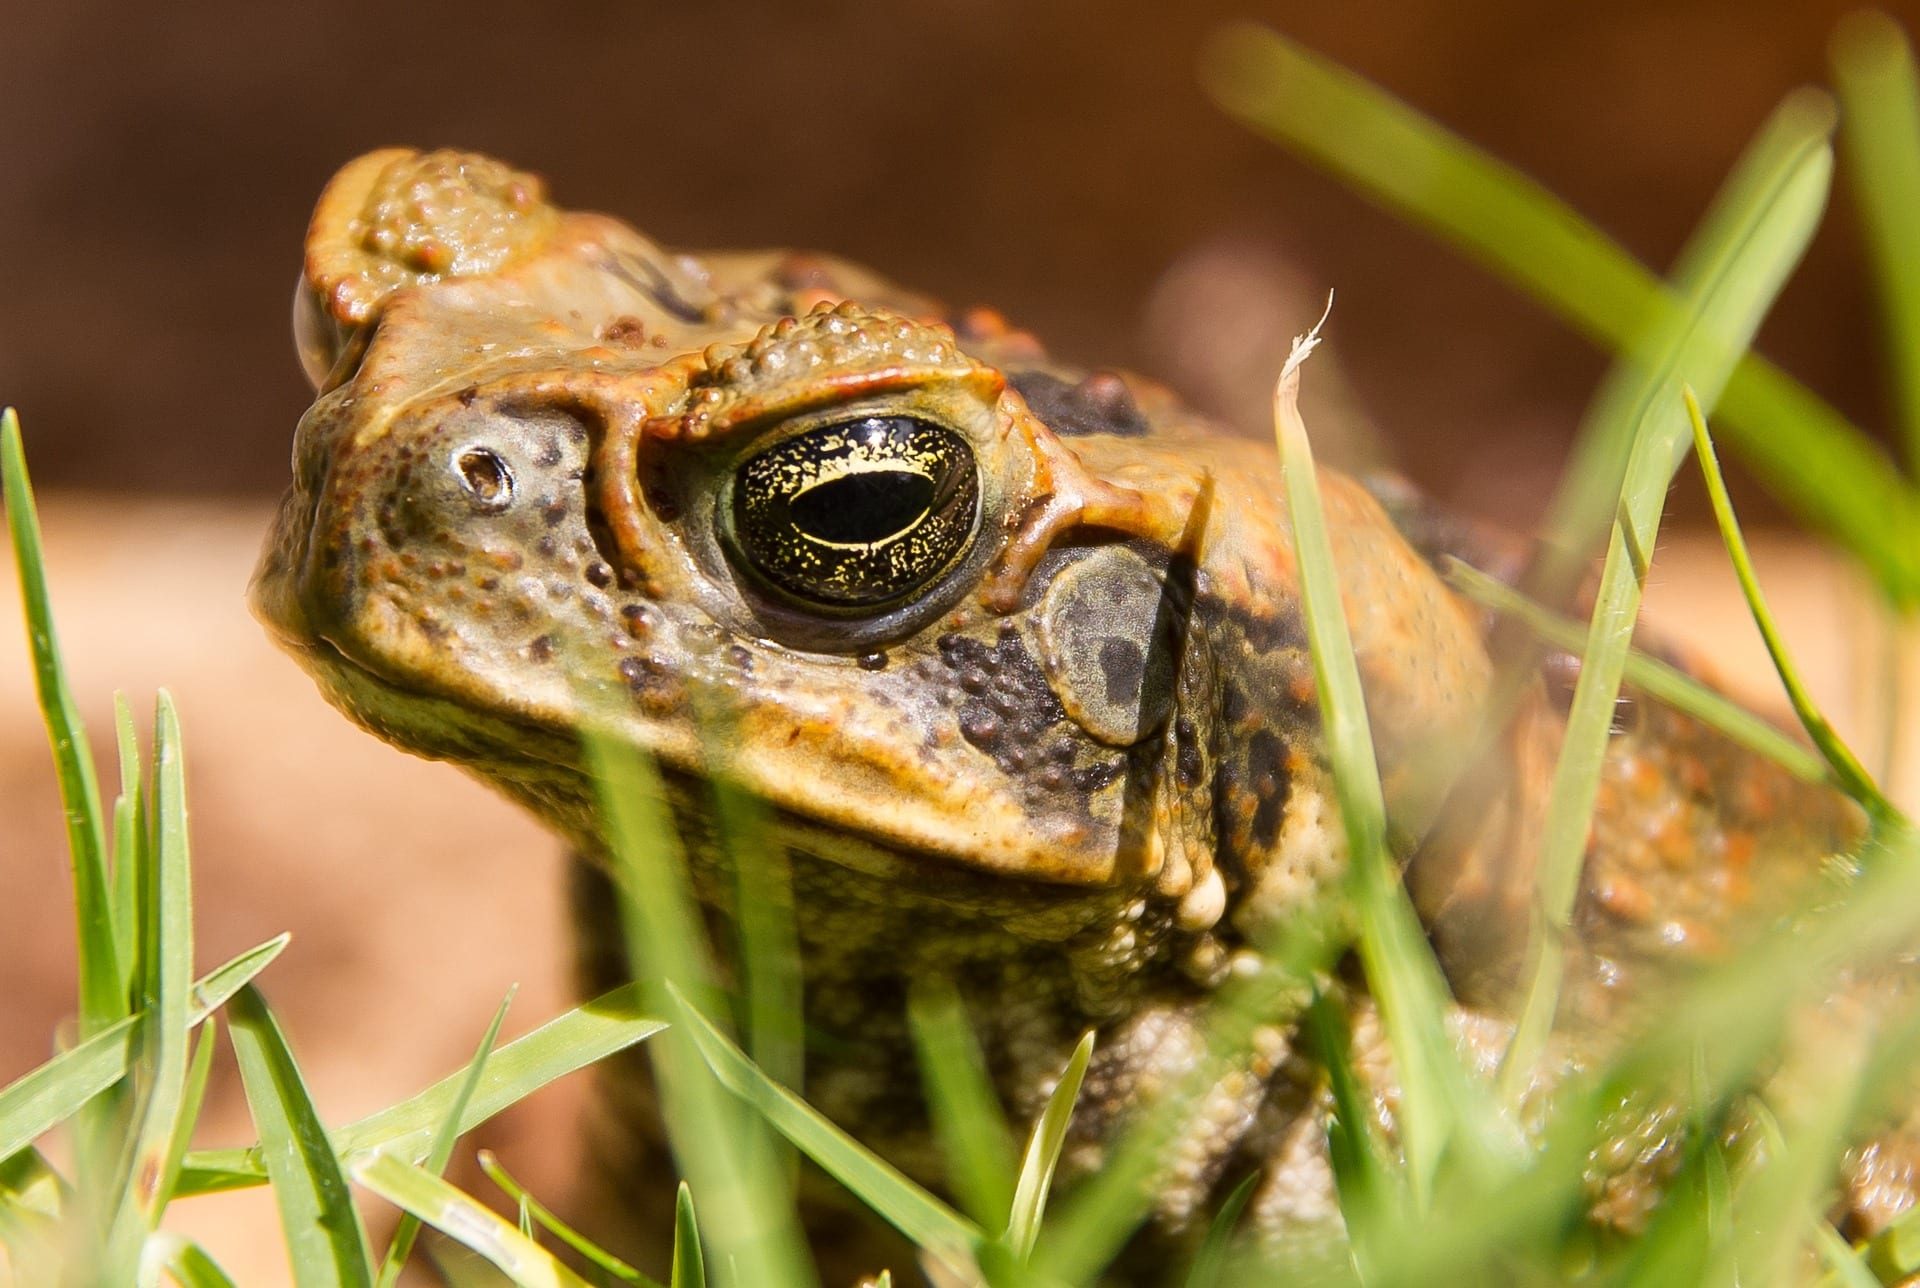 Cane Toad in a field